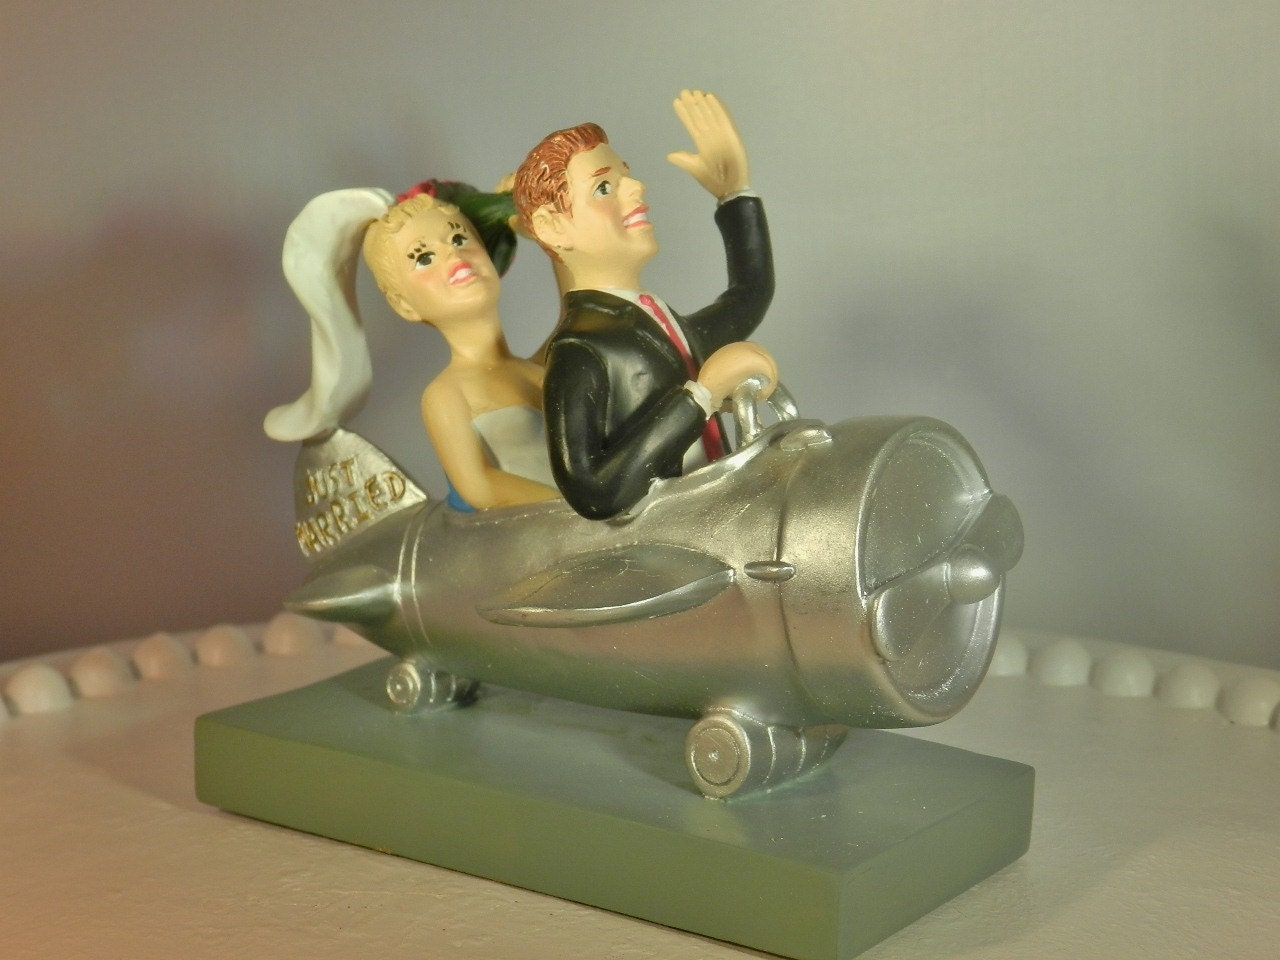 Airplane Pilot Wedding Cake Topper